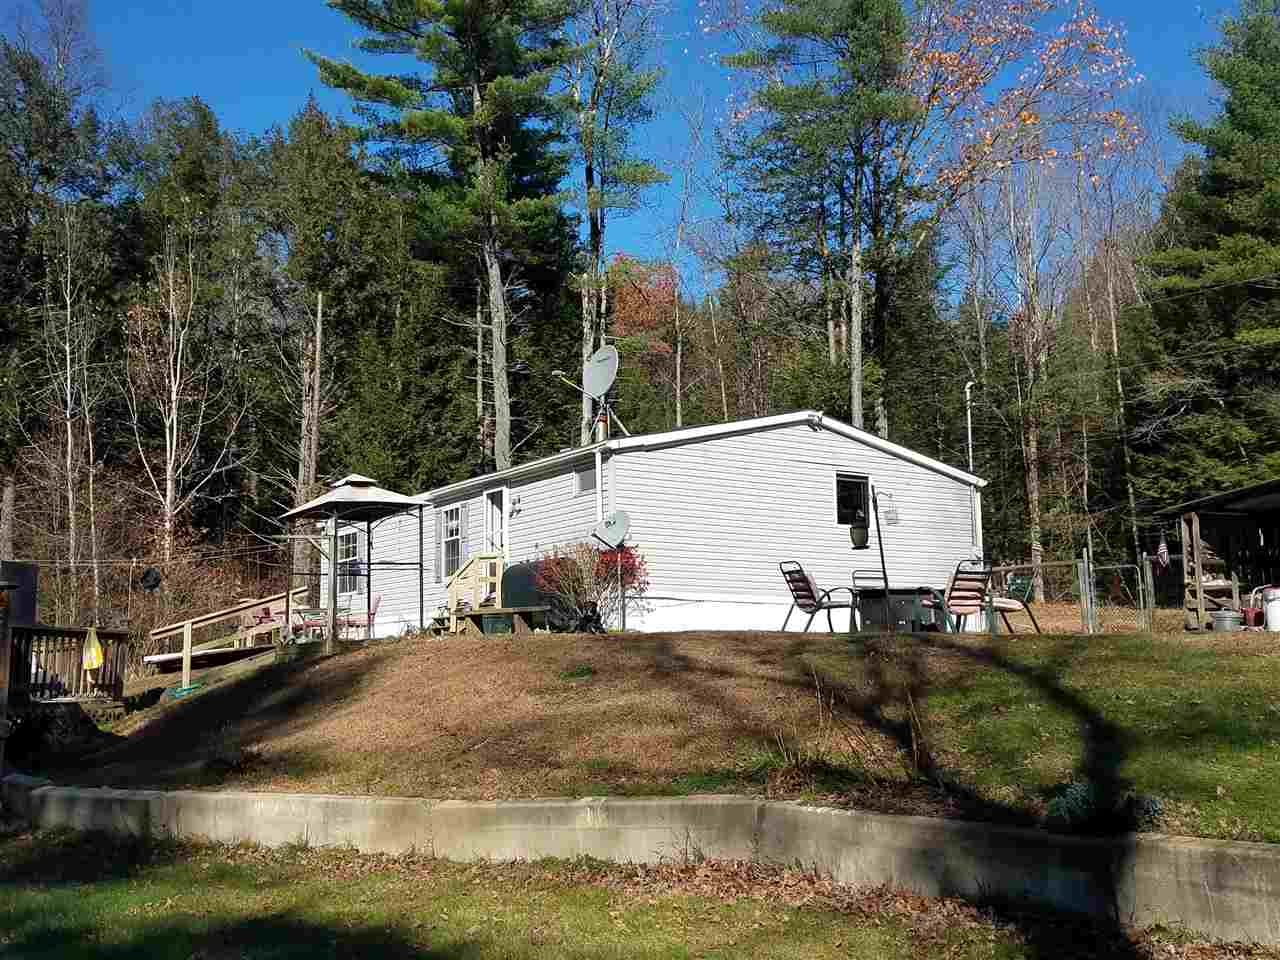 MLS 4784087: 530 Oxbow Road, Hinsdale NH